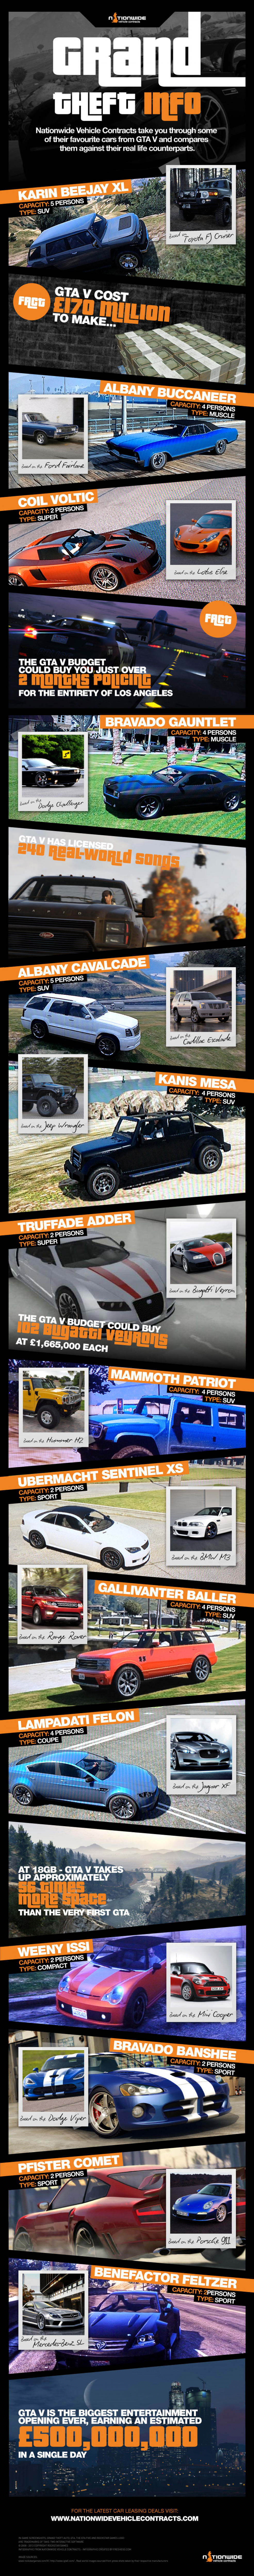 Grand Theft Info Infographic